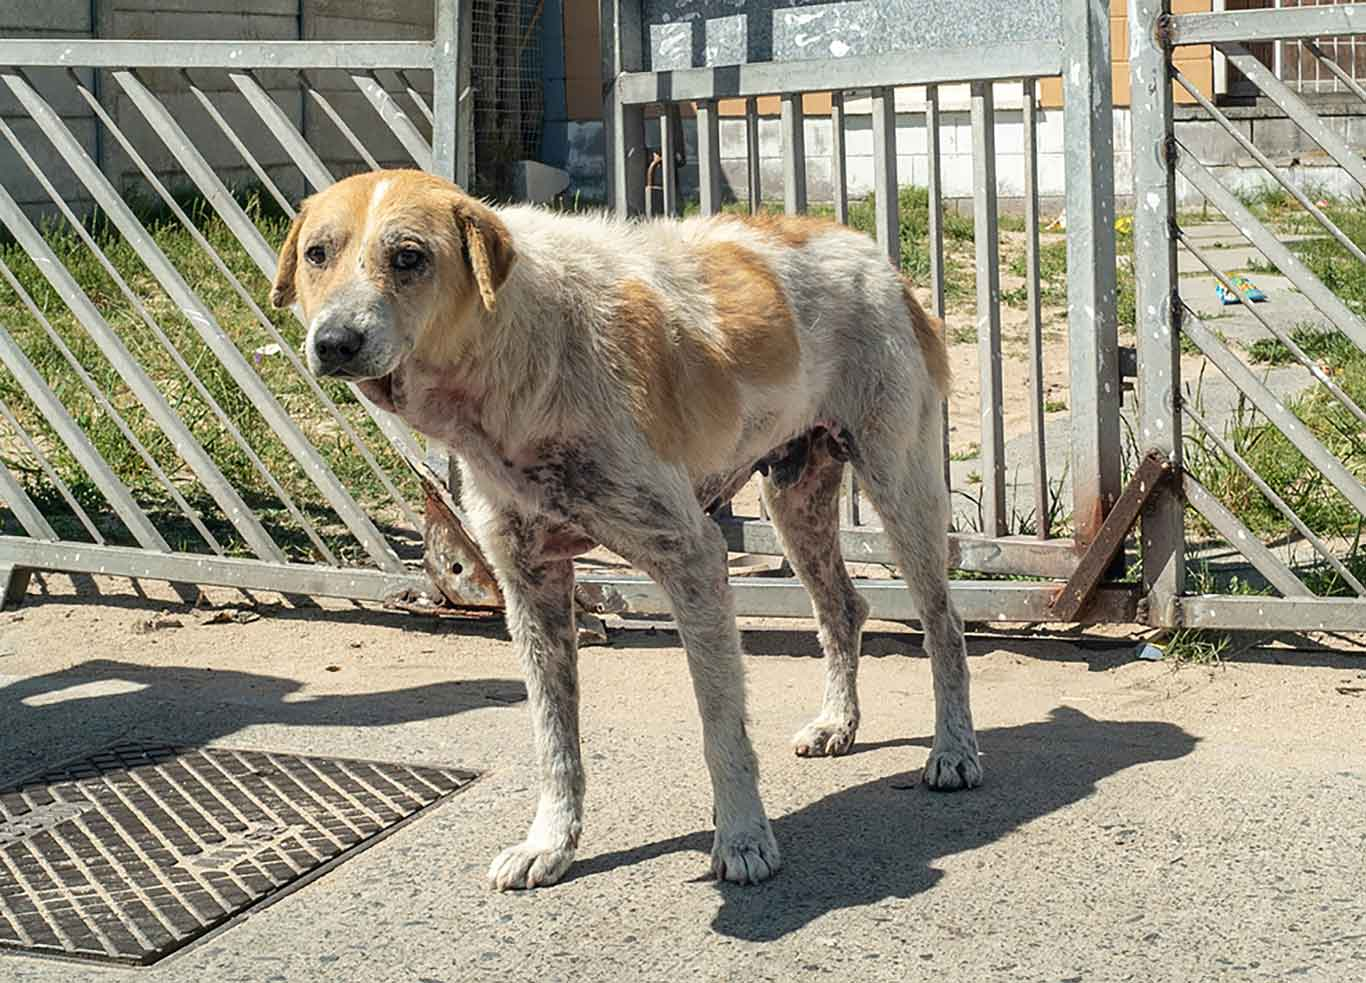 Time is running out to save 365 hungry dogs from starvation in South Africa. 1